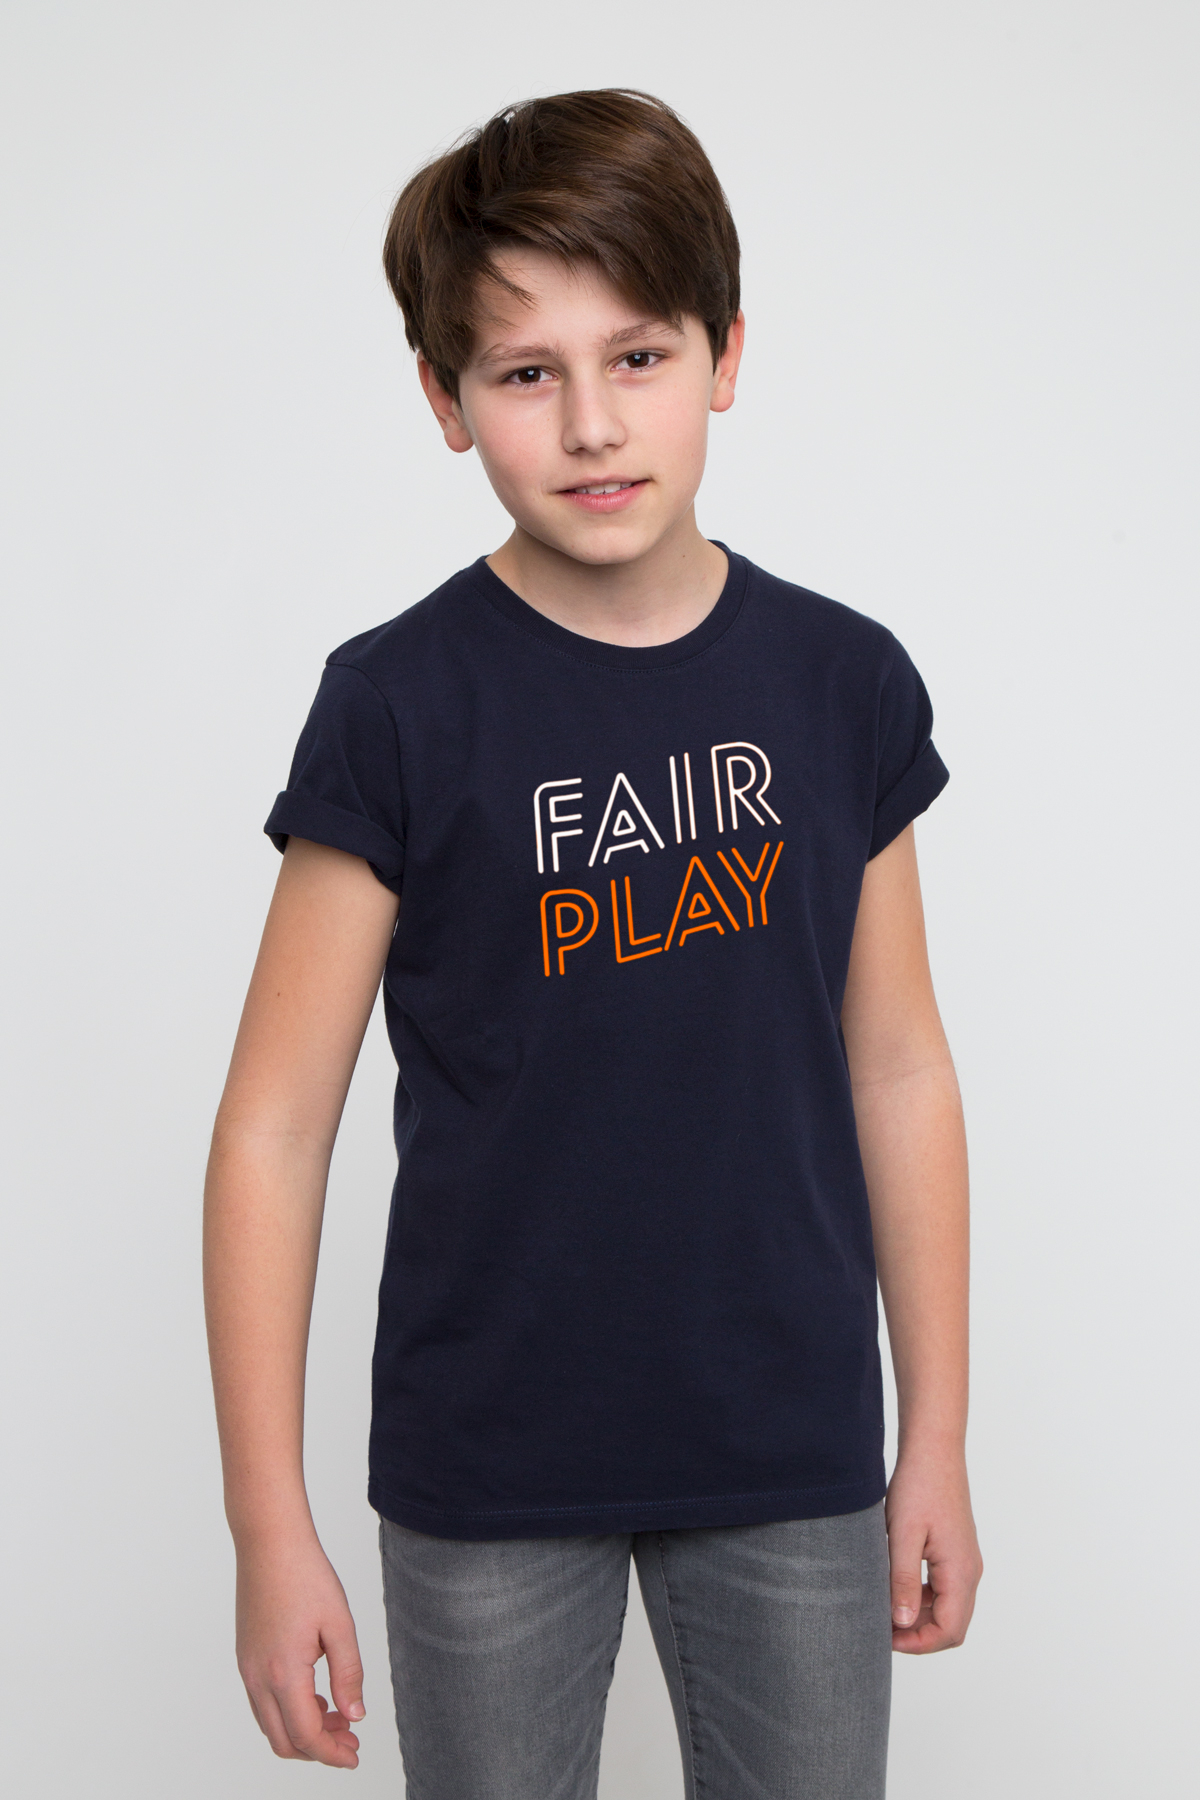 Photo de Tshirt kids Tshirt kids FAIR PLAY chez French Disorder